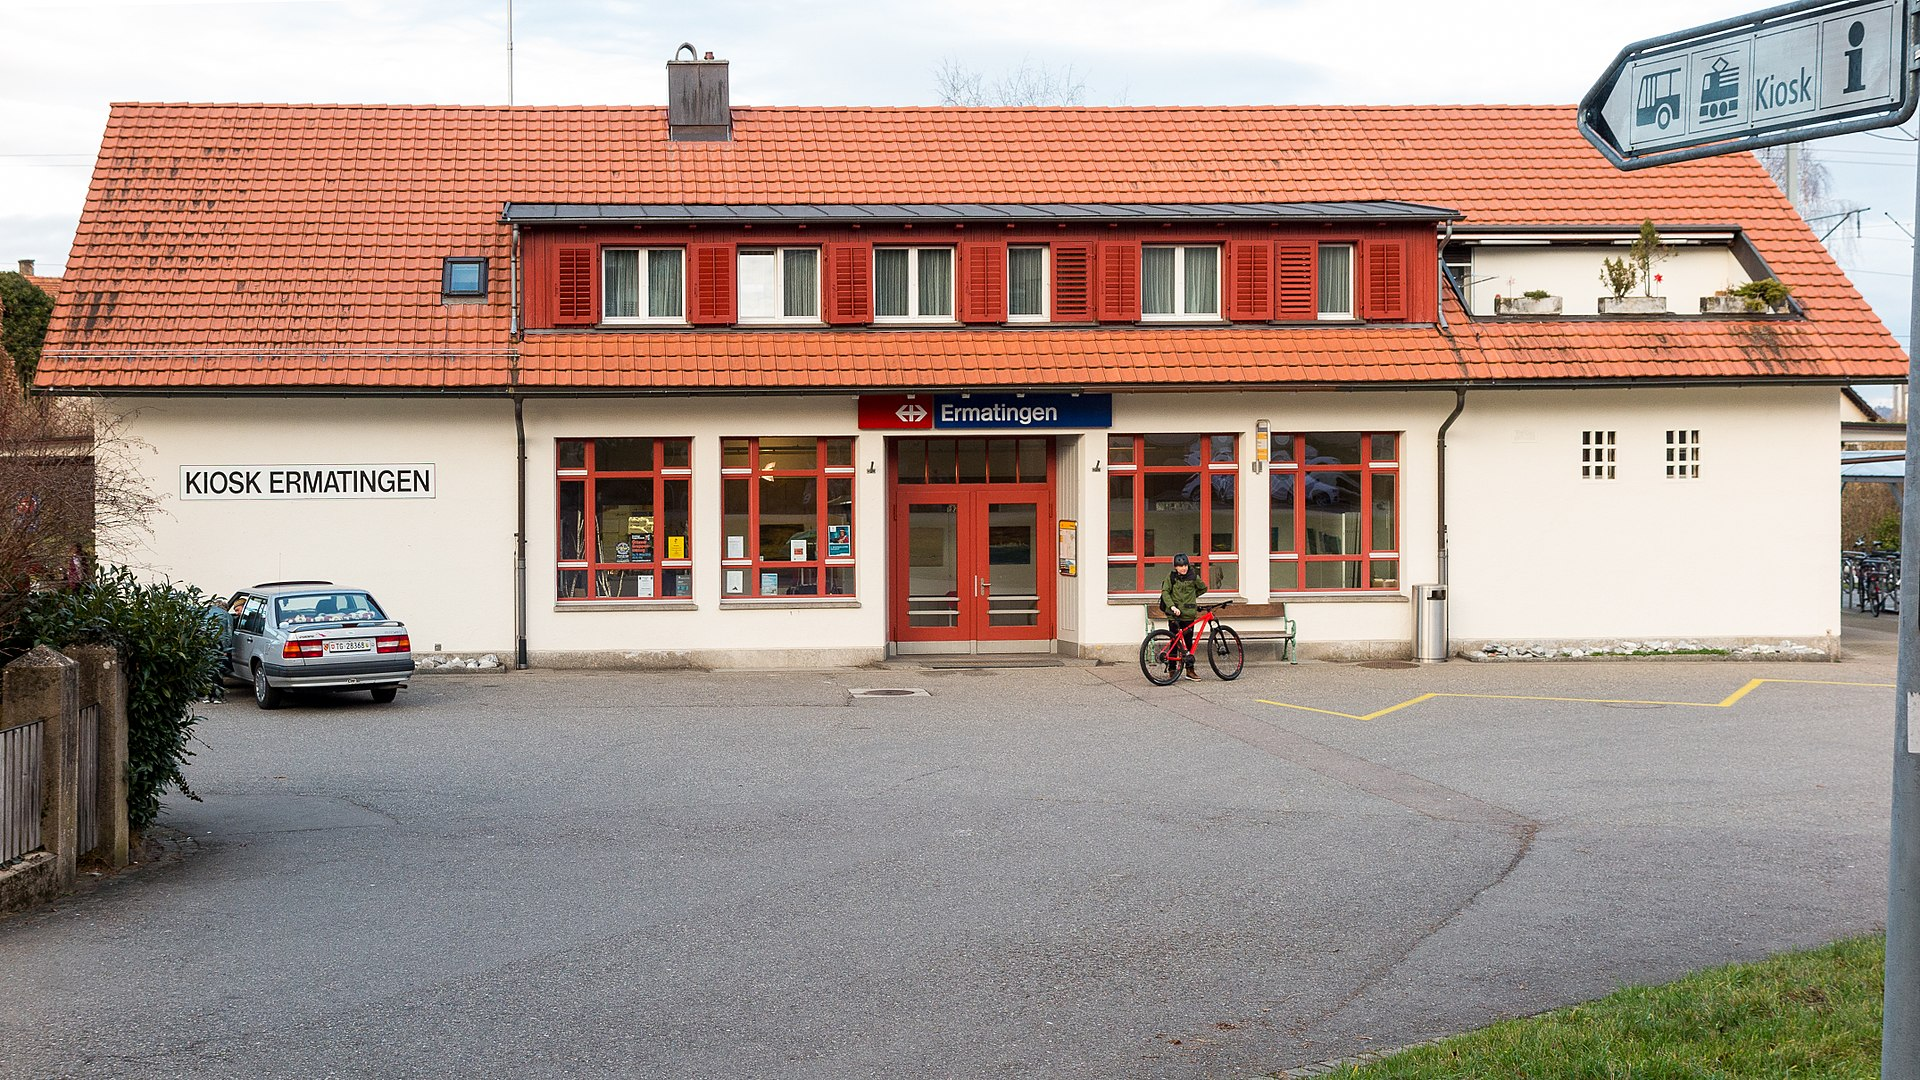 White building with red tiled roof